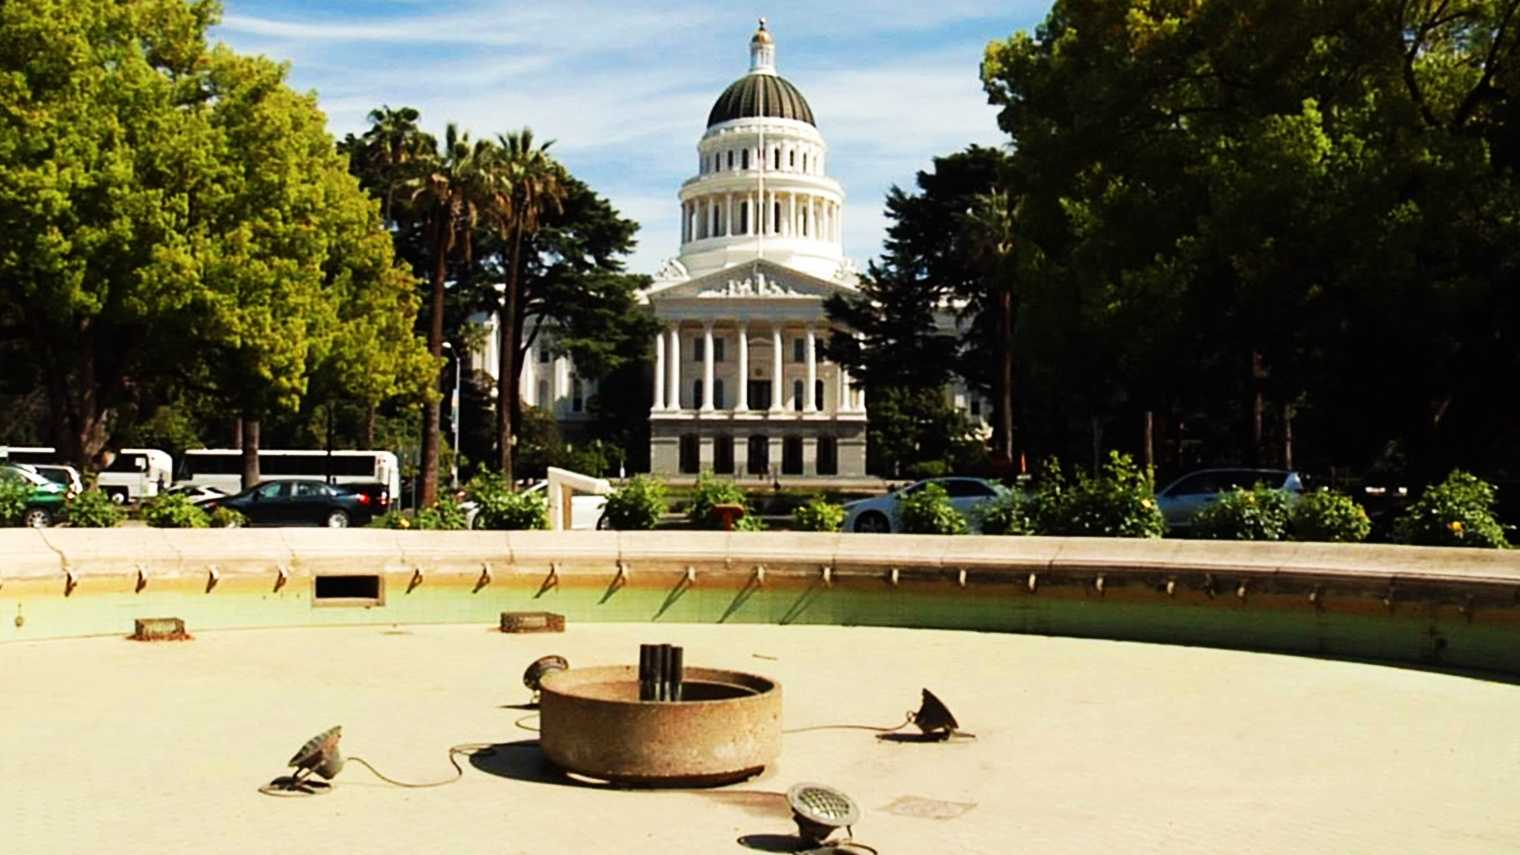 Lawns at California's Capitol are brown and the fountains are dry to conserve water.